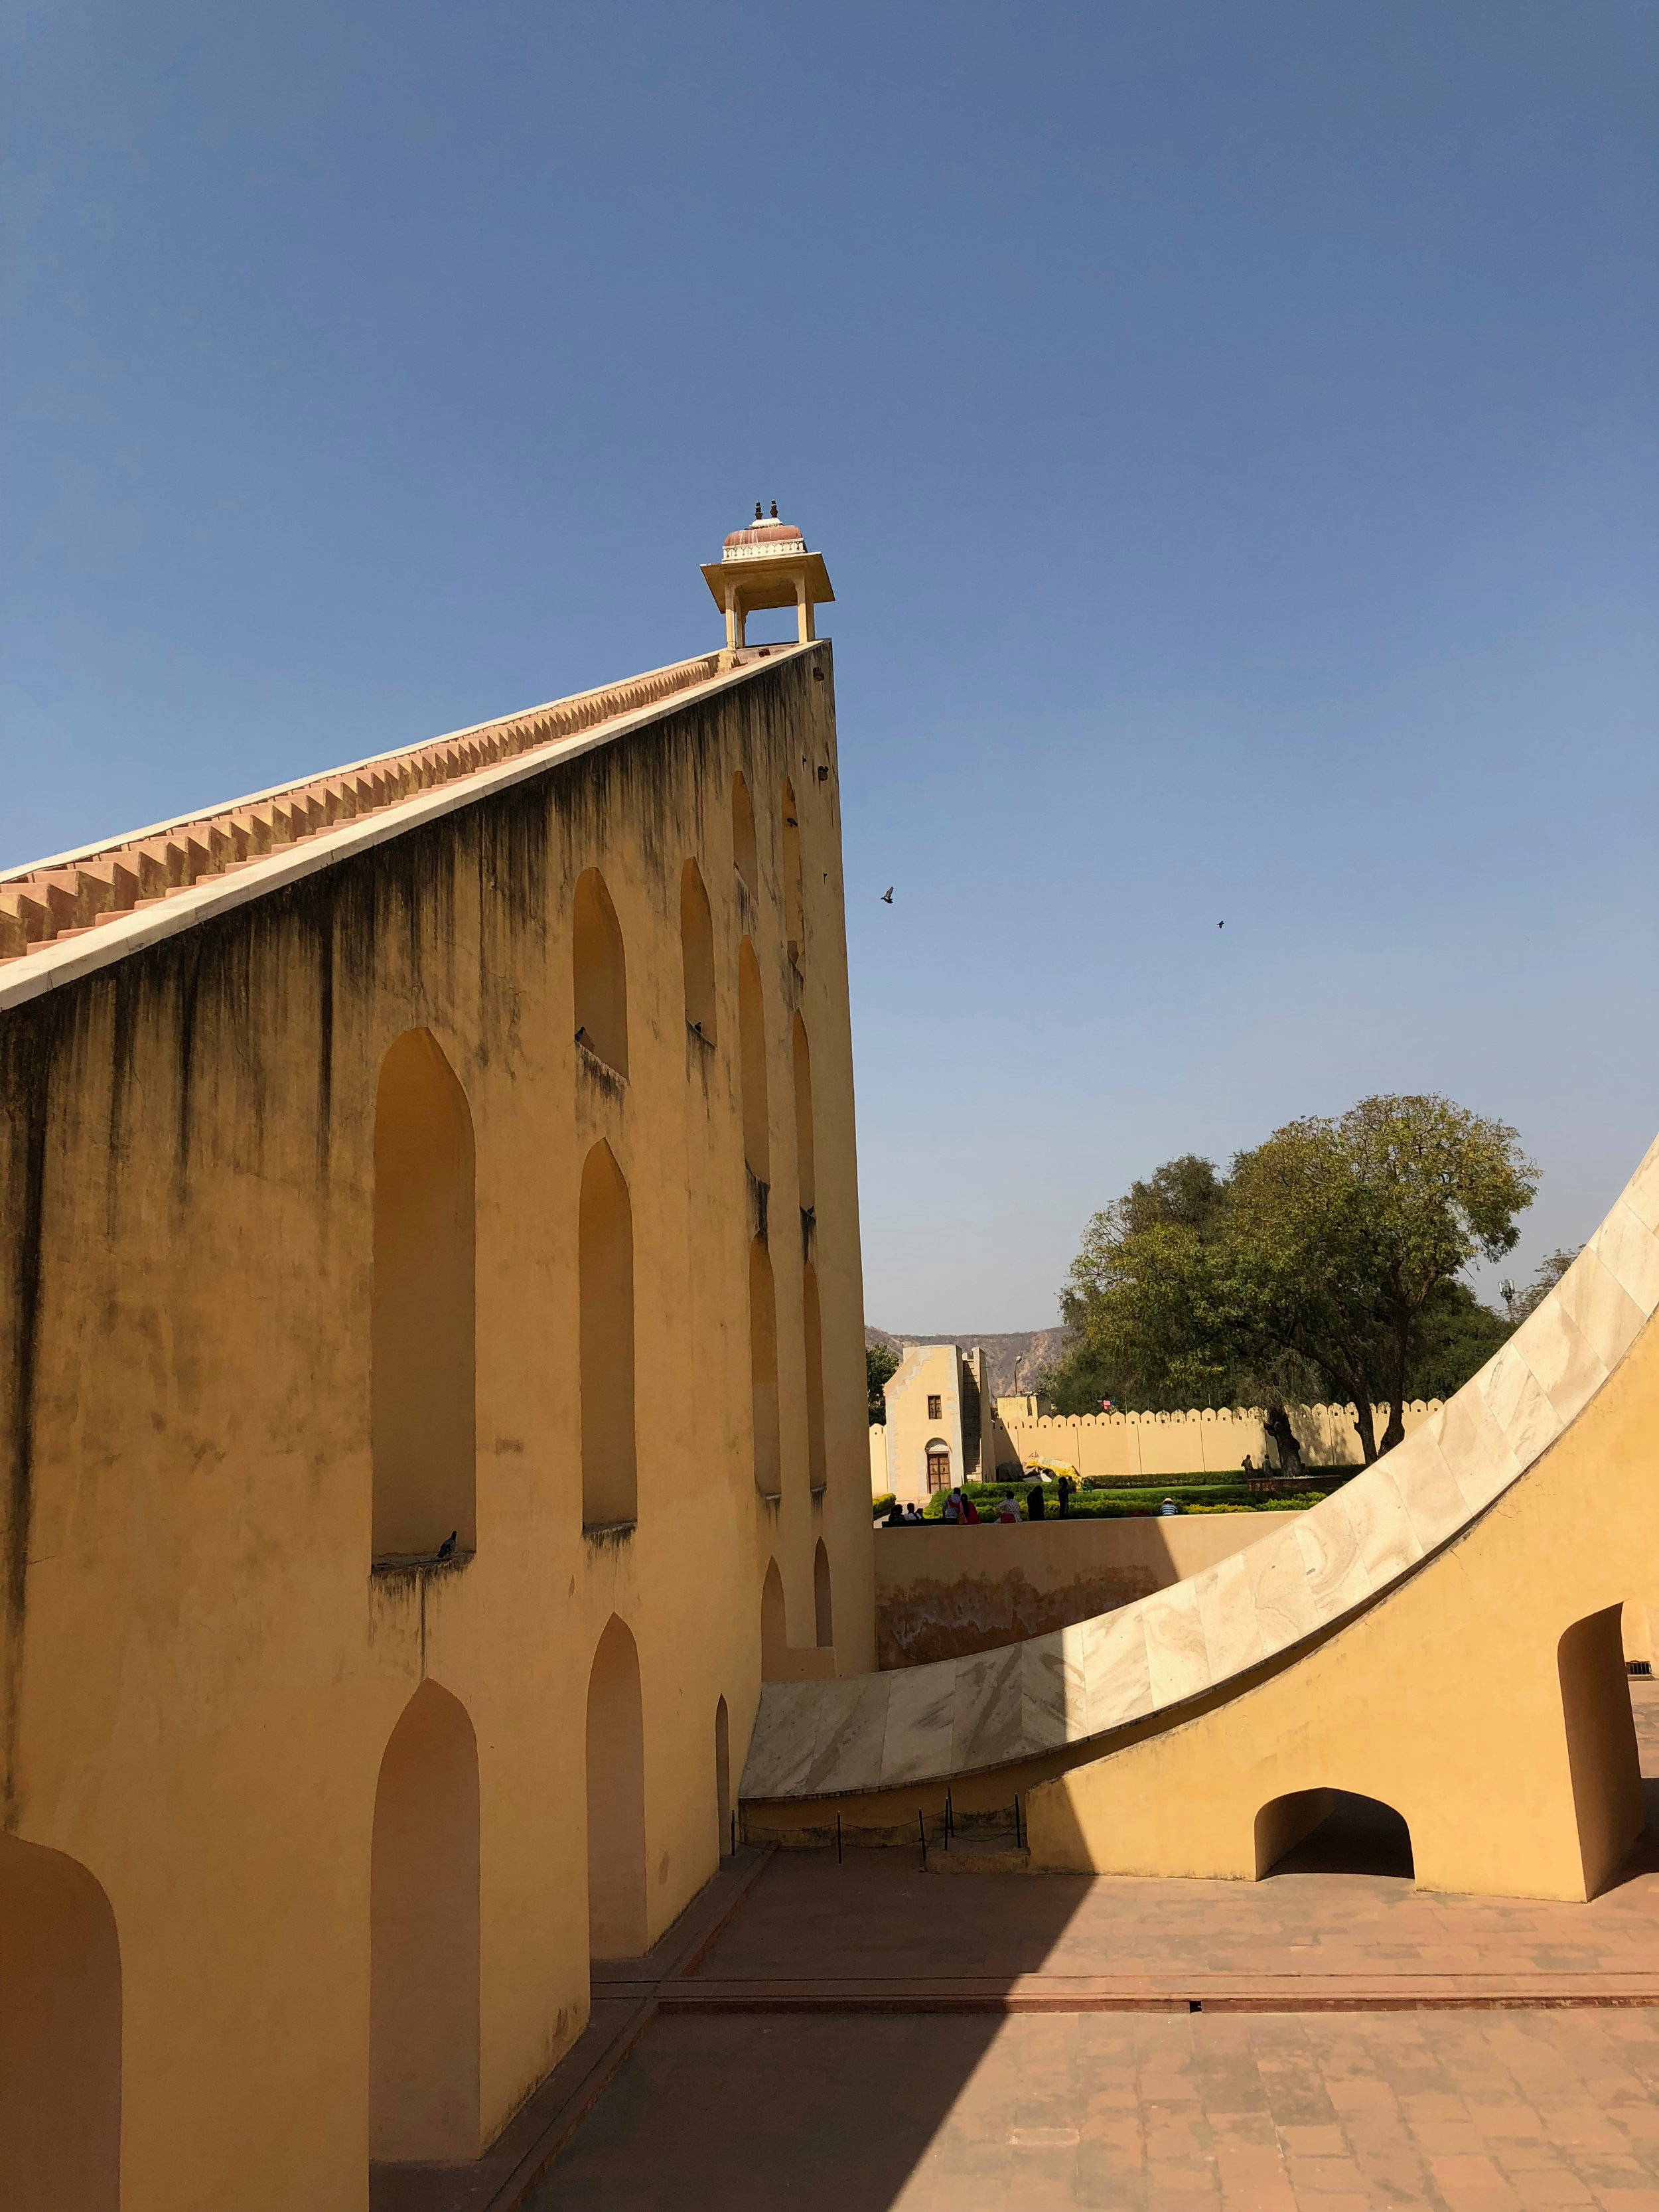 Jantar Mantar, The largest sundial in the world